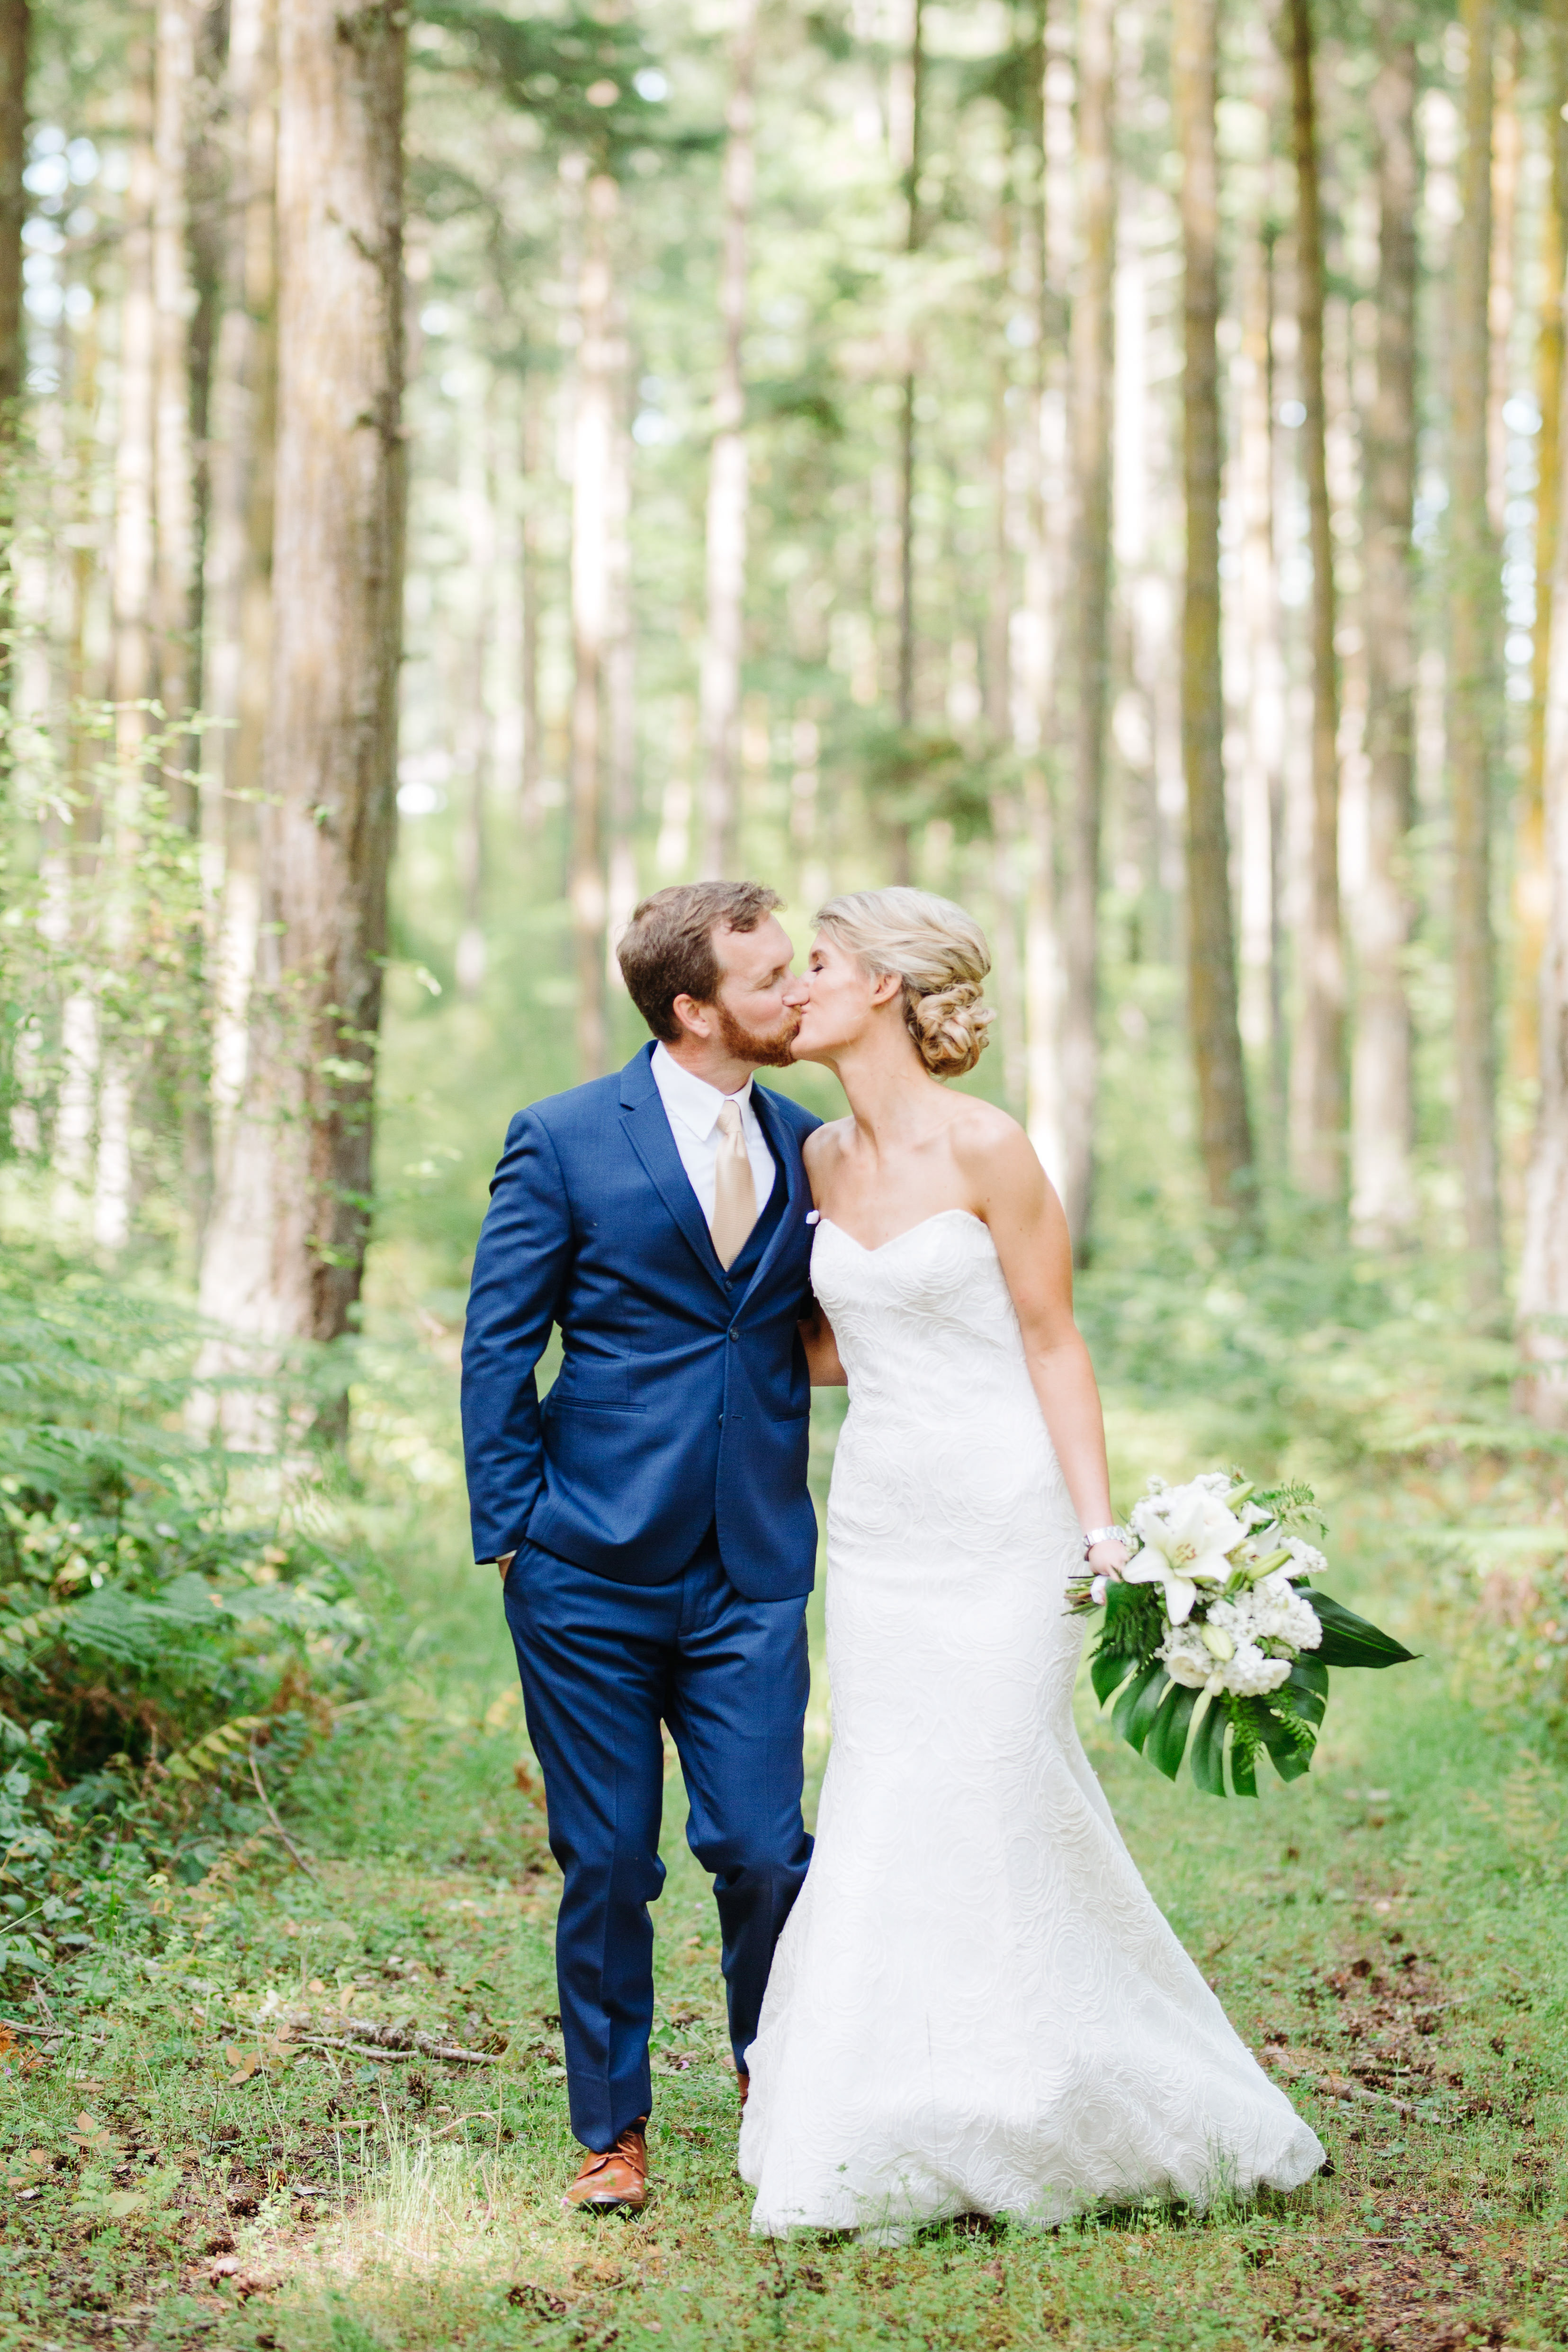 Bride and groom kiss in forest - photo by Cameron Zegers Photography